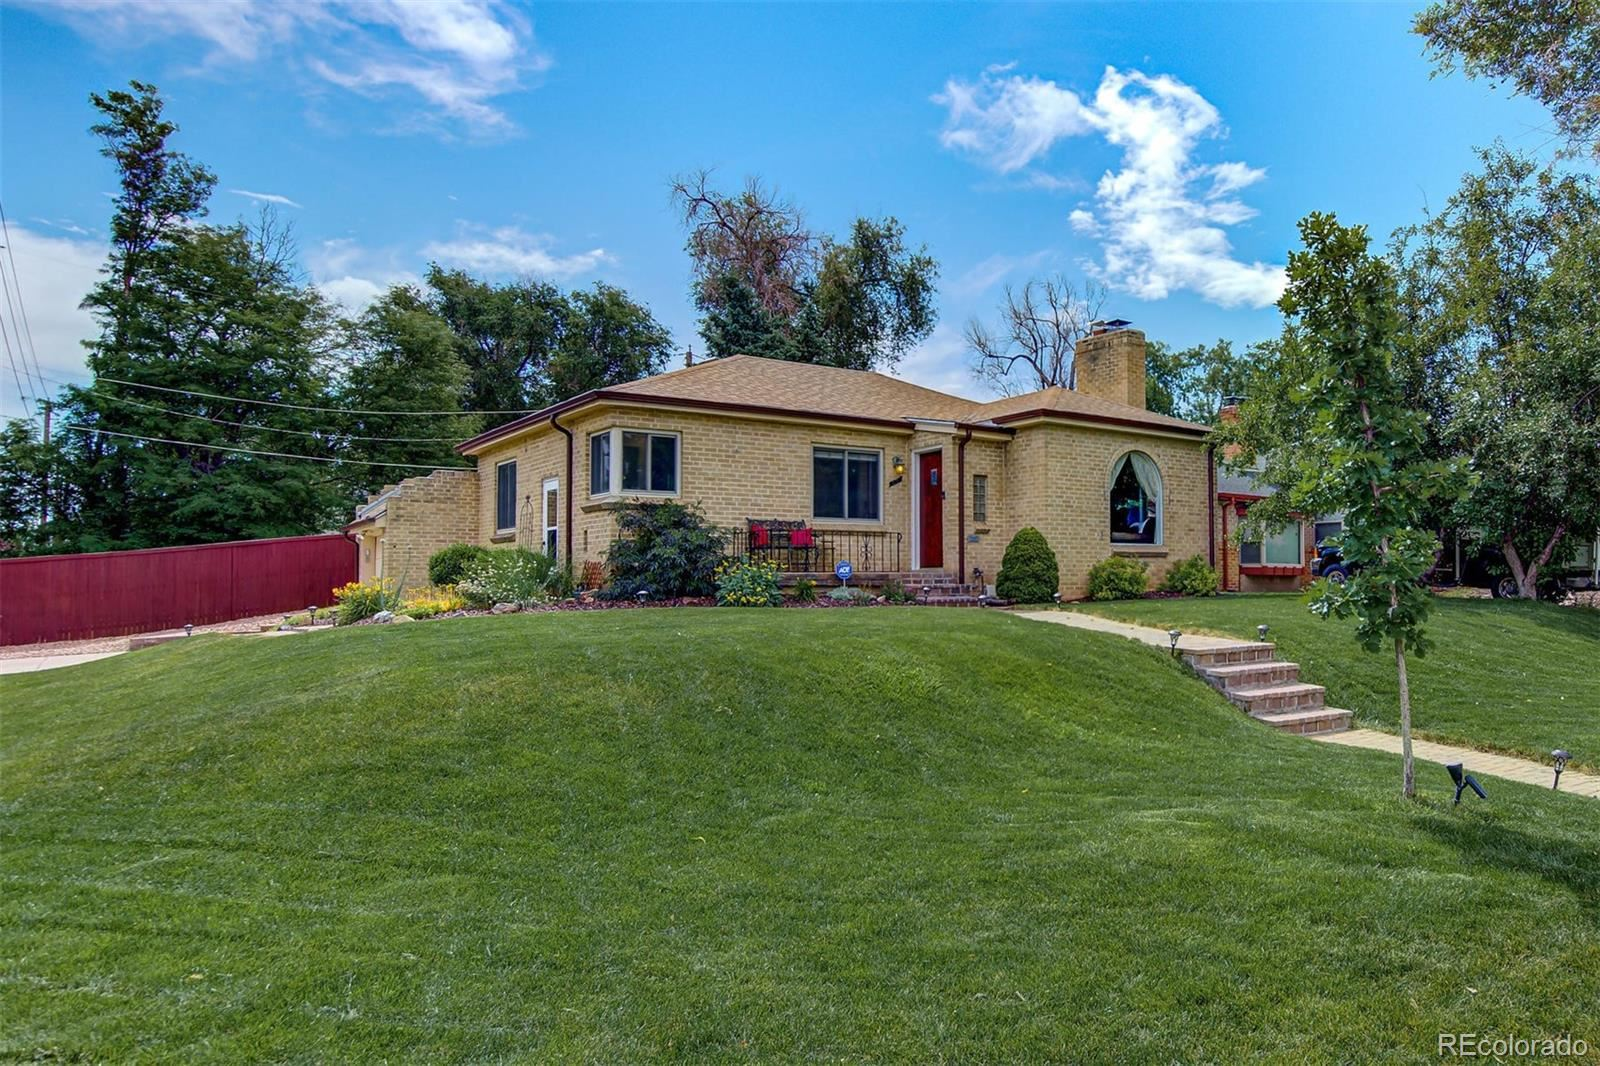 1696 Pontiac Street, Denver, CO 80220 - #: 6699670